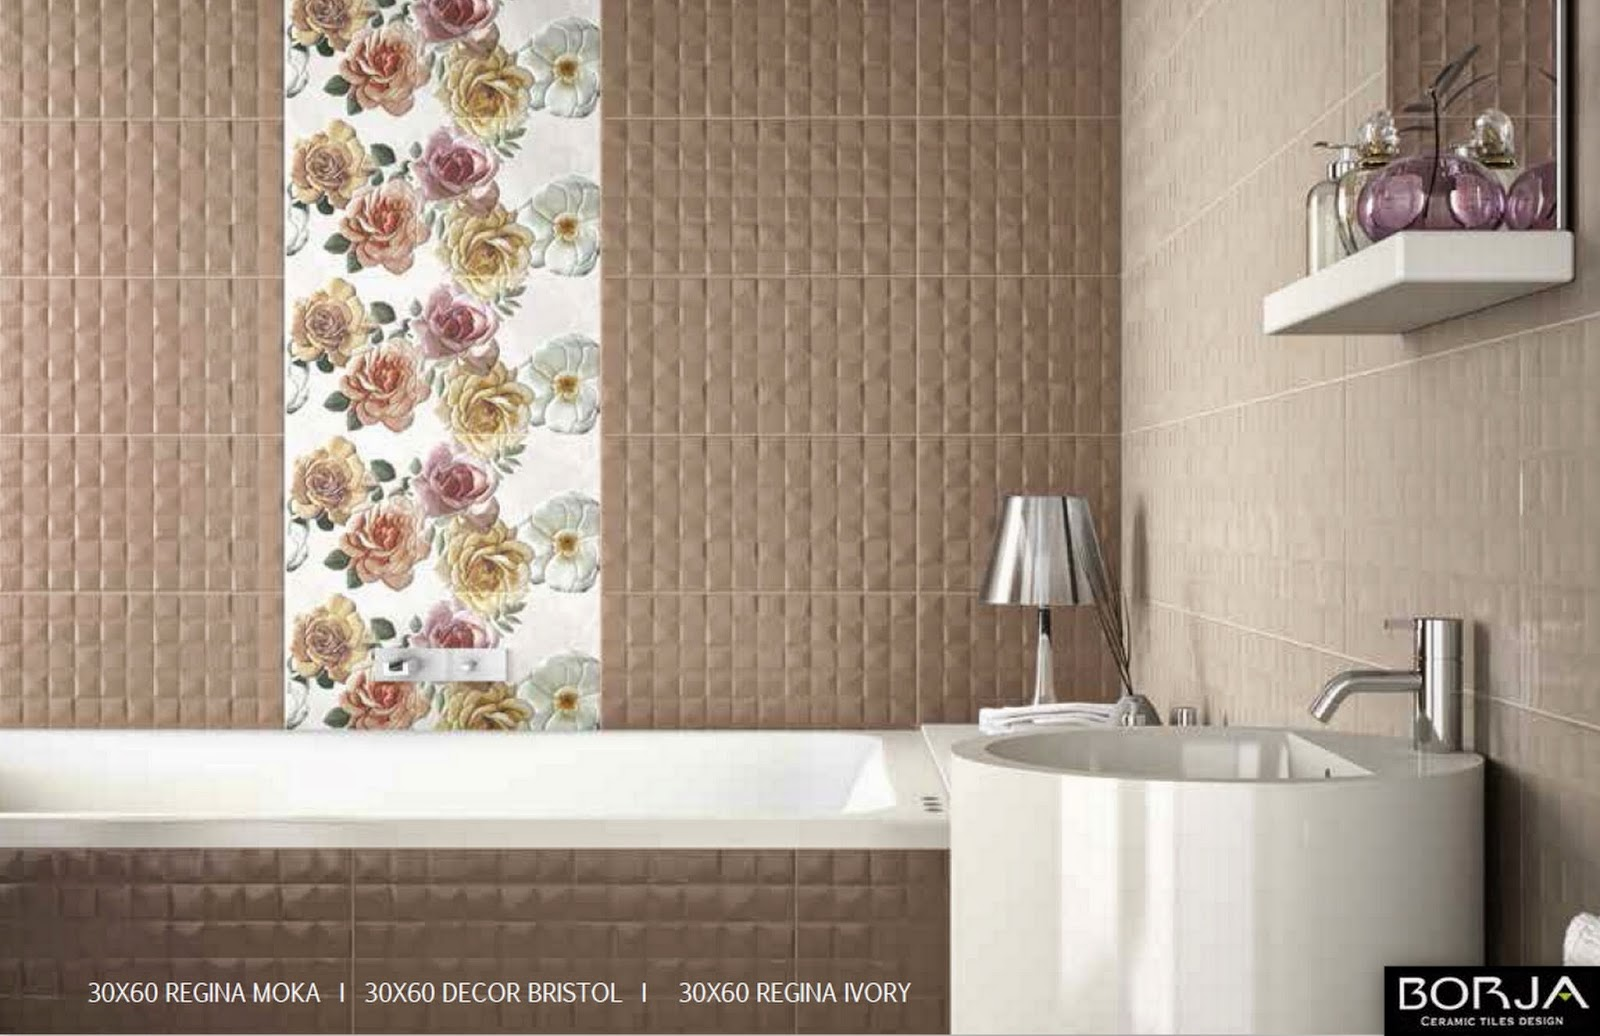 Borja ceramic tiles design 3d decoration boston leeds small flowers in the photo below 30x60 ready to order now you can combine them freely with all the seizes 30x60 we dailygadgetfo Image collections